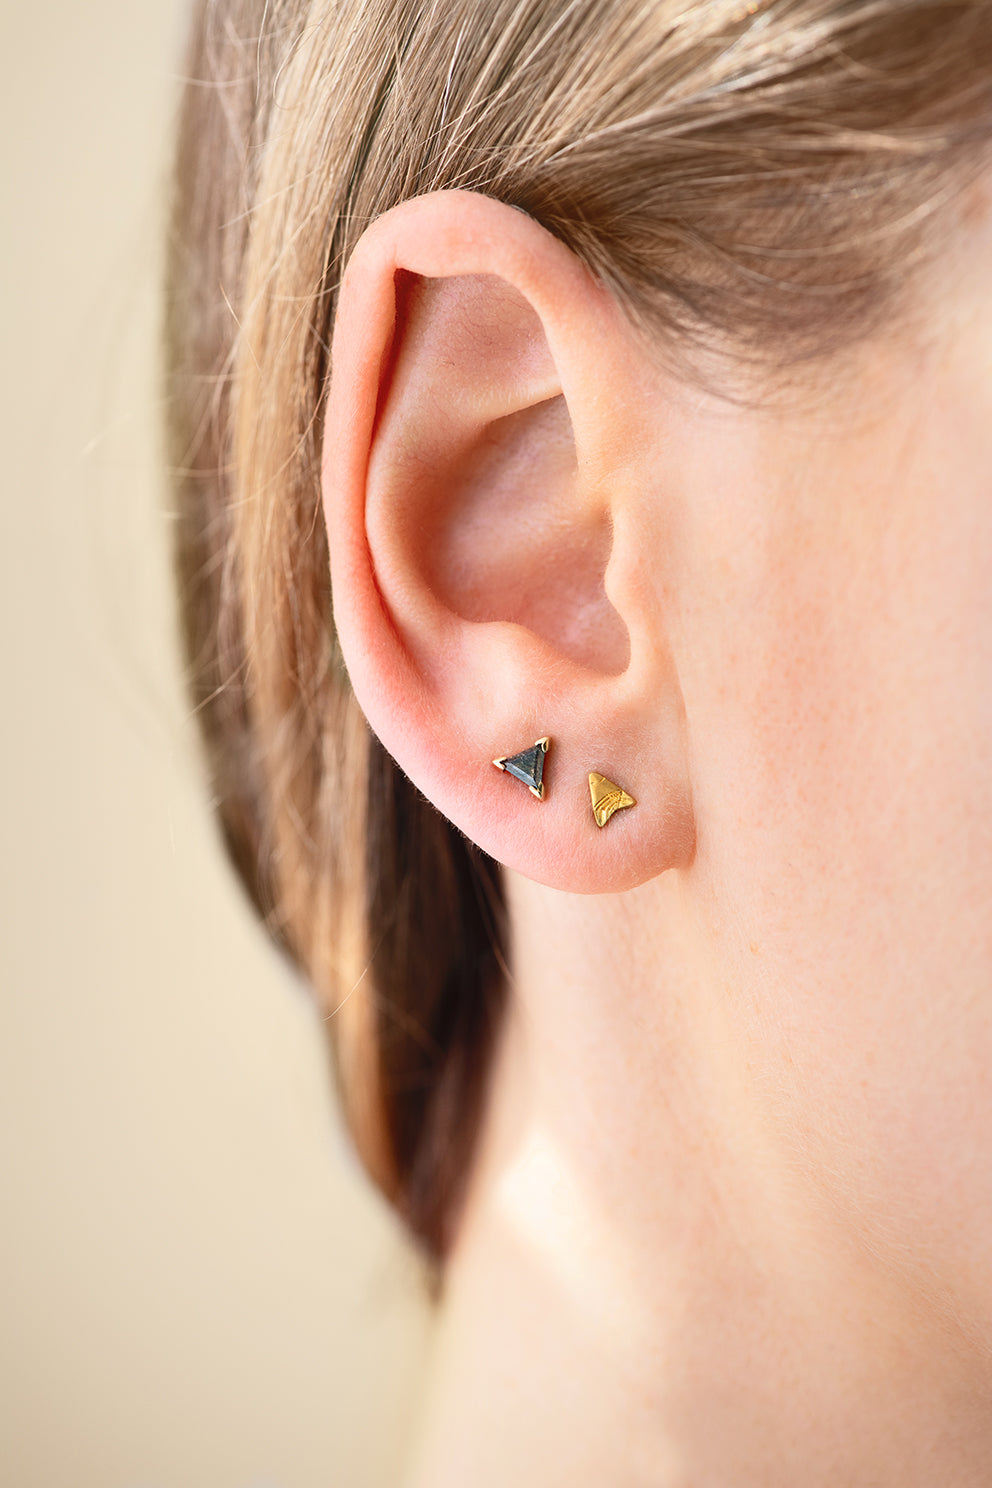 Gold Stud Earring - Arrow Earring on Ear in Set